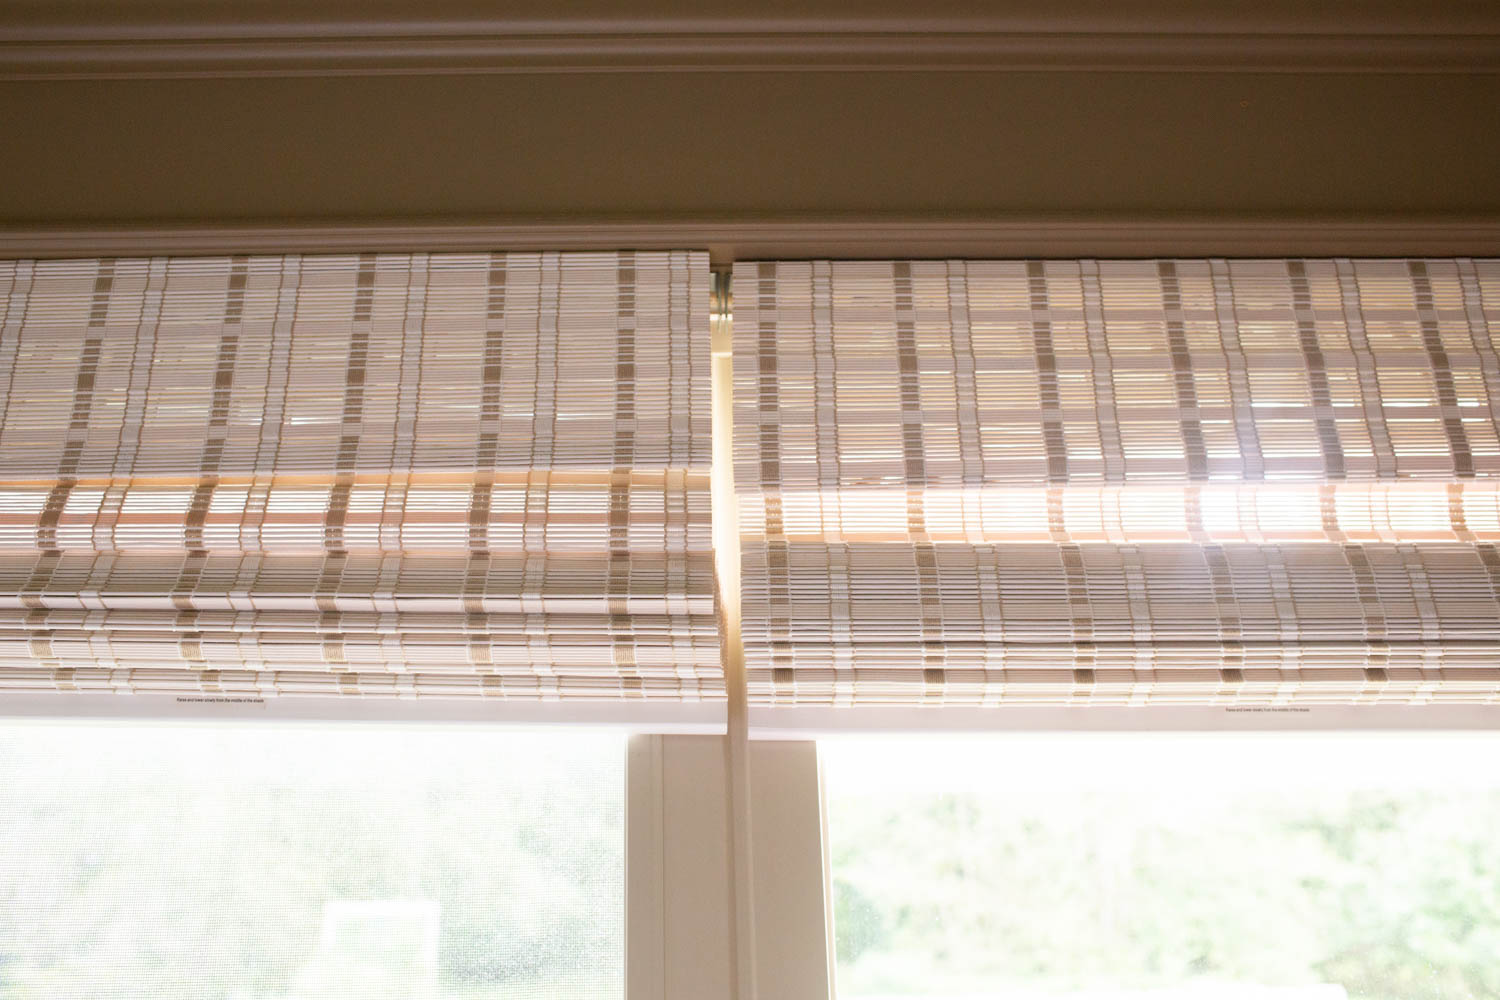 Affordable Whitewash Bamboo Roman Shades - Arlo Blinds Review: Are They Good Quality?